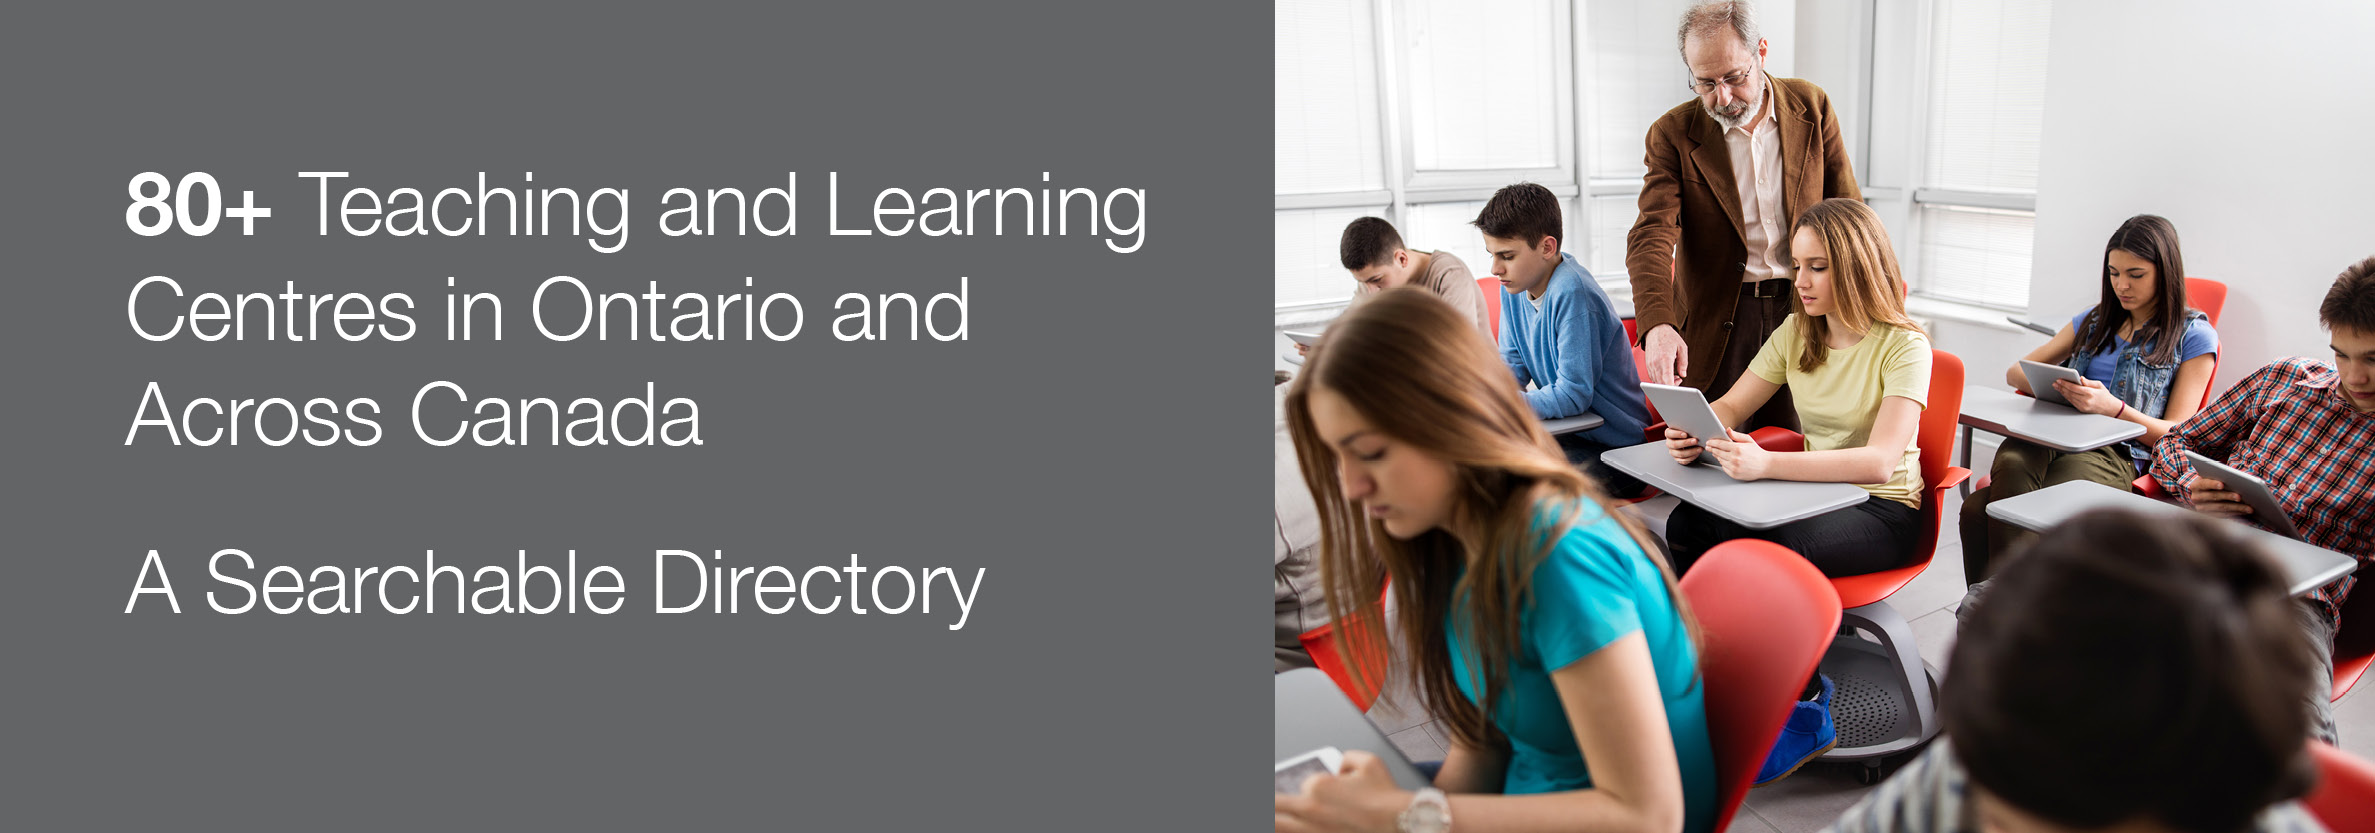 https://teachonline.ca/Photo%20of%20students%20and%20educator%20in%20class%20to%20illustrate%20searchable%20directory